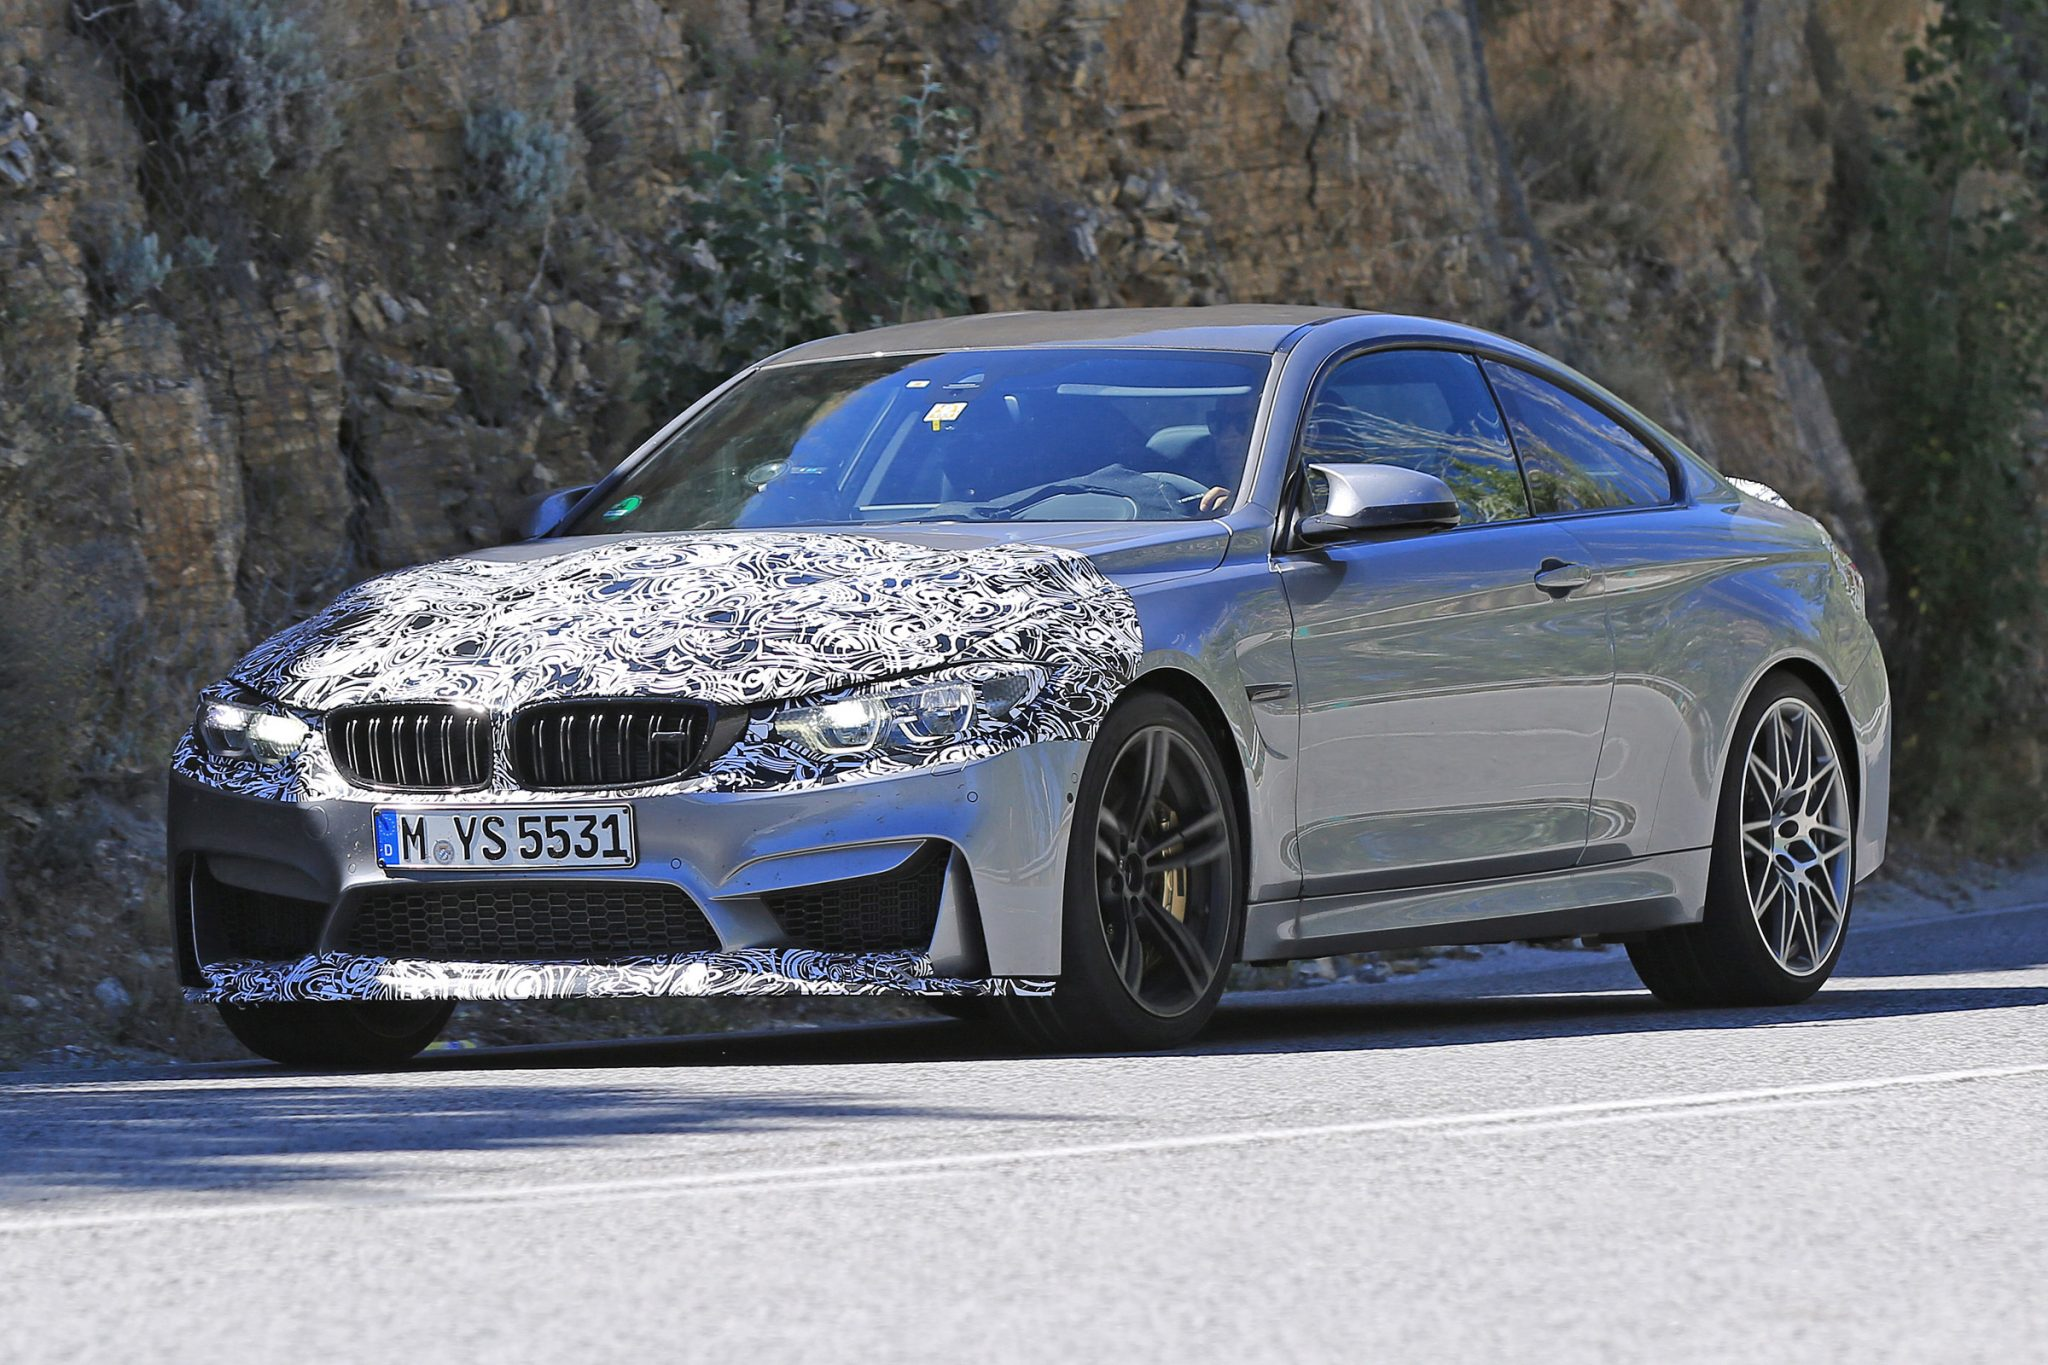 2017 Bmw M4 Coupe Spied With Minor Updates Forcegt Com